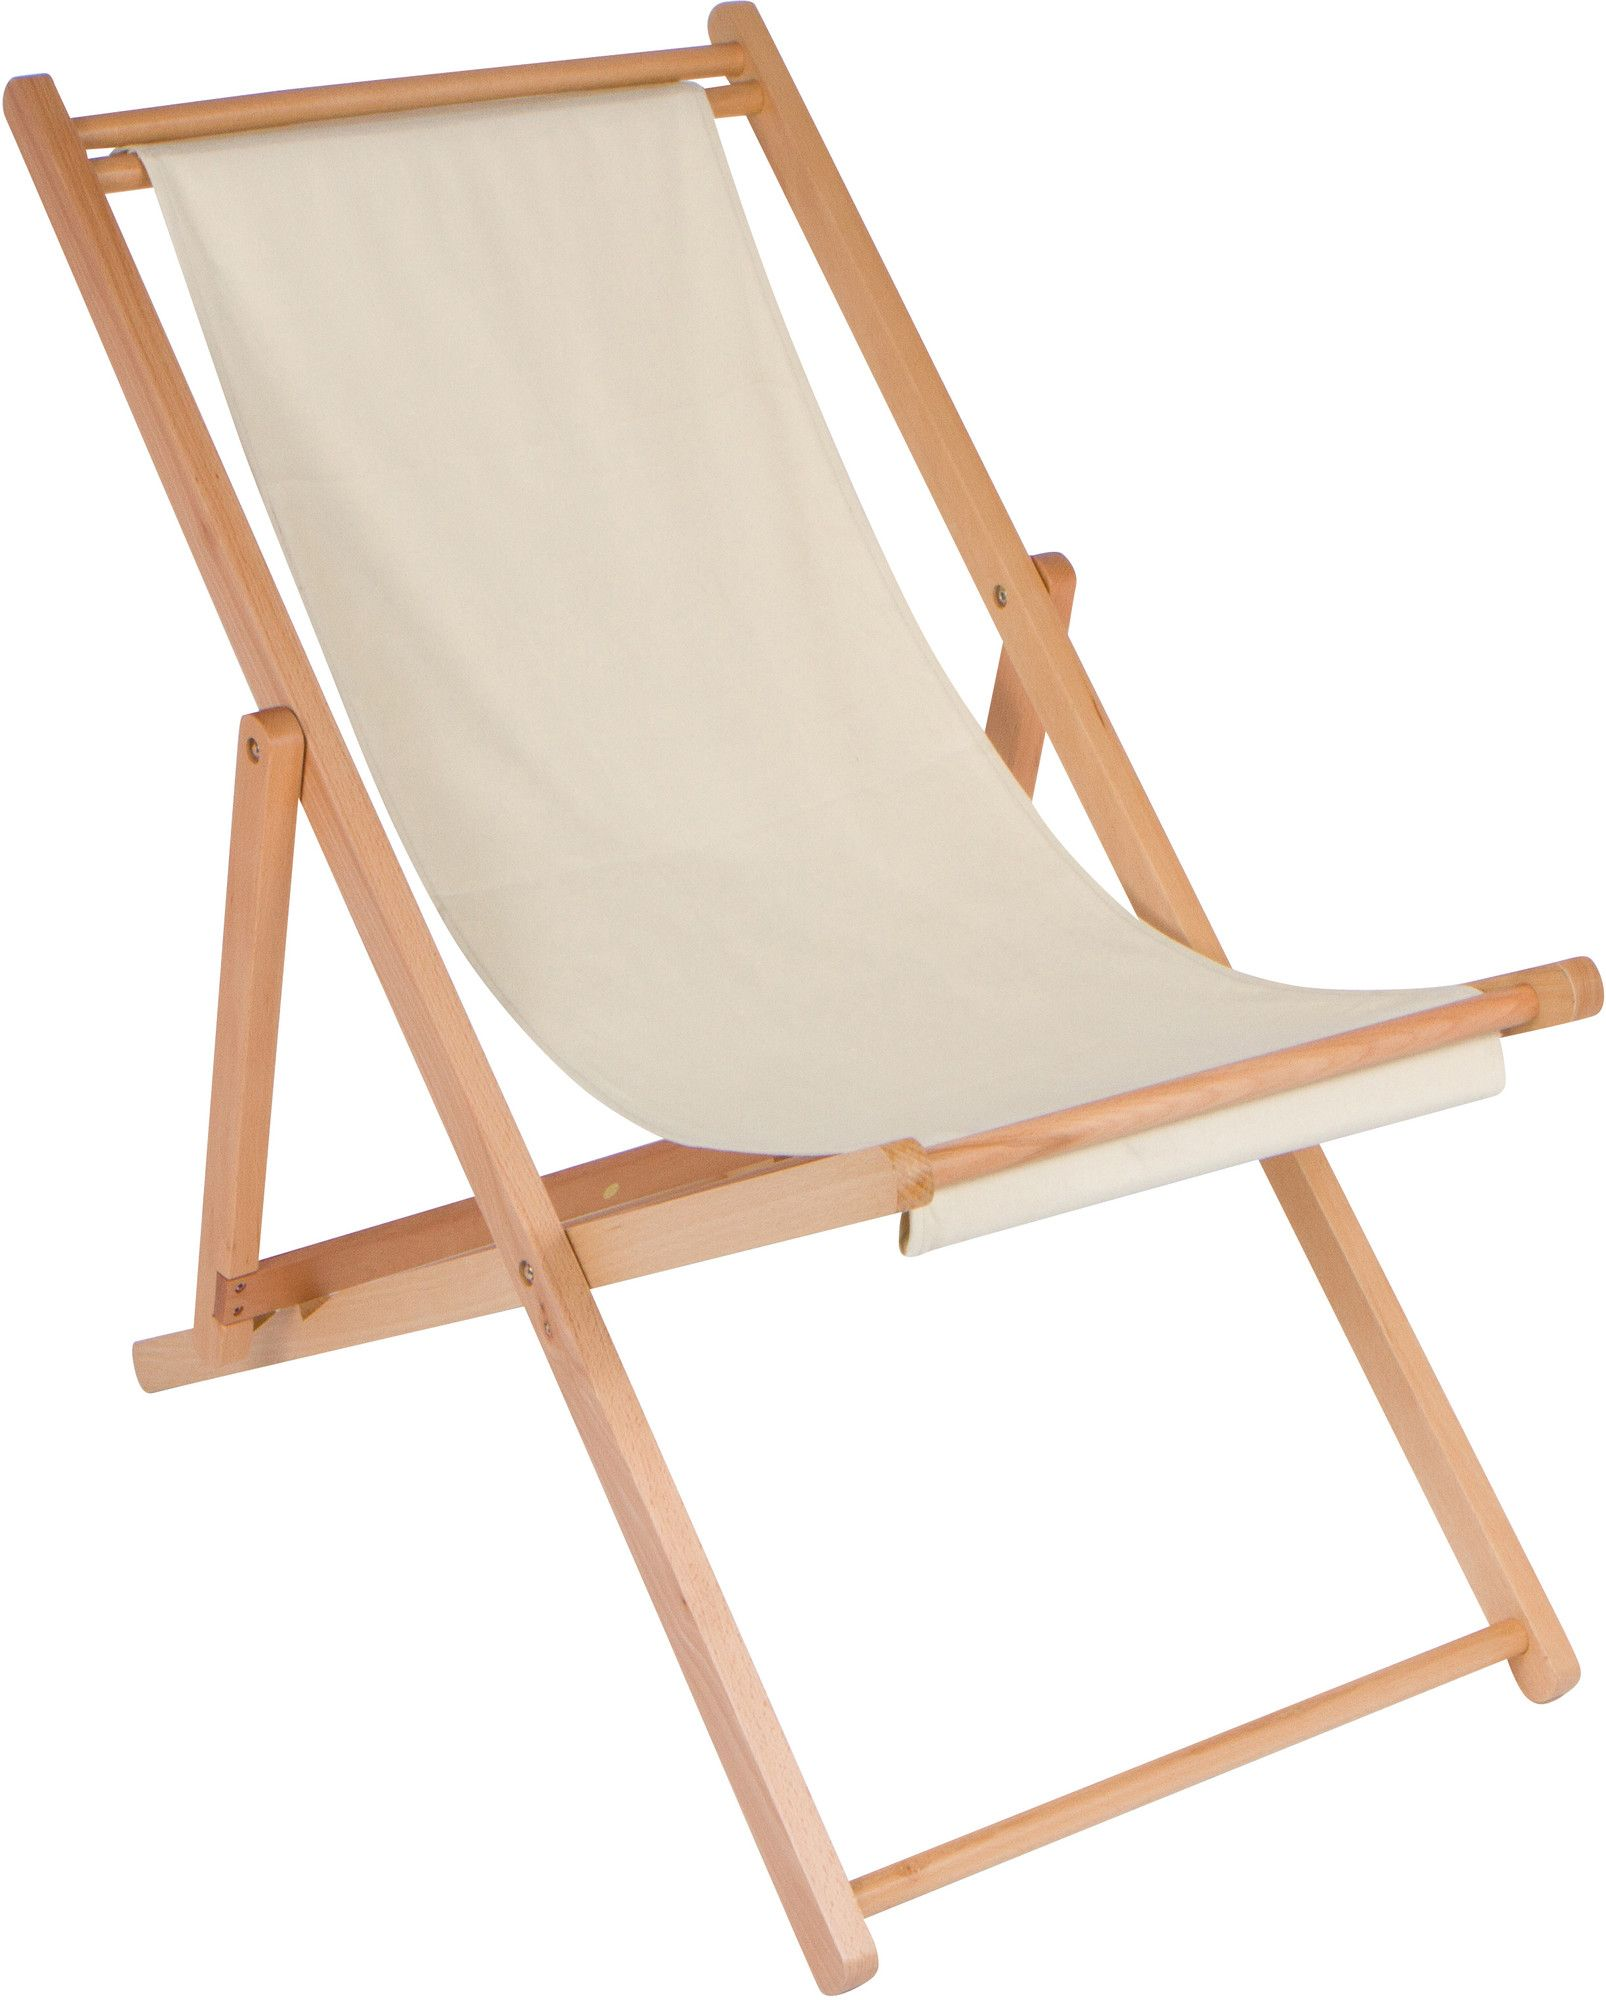 Enjoyable Cabana Reclining Beach Chair Products In 2019 Beach Home Remodeling Inspirations Basidirectenergyitoicom